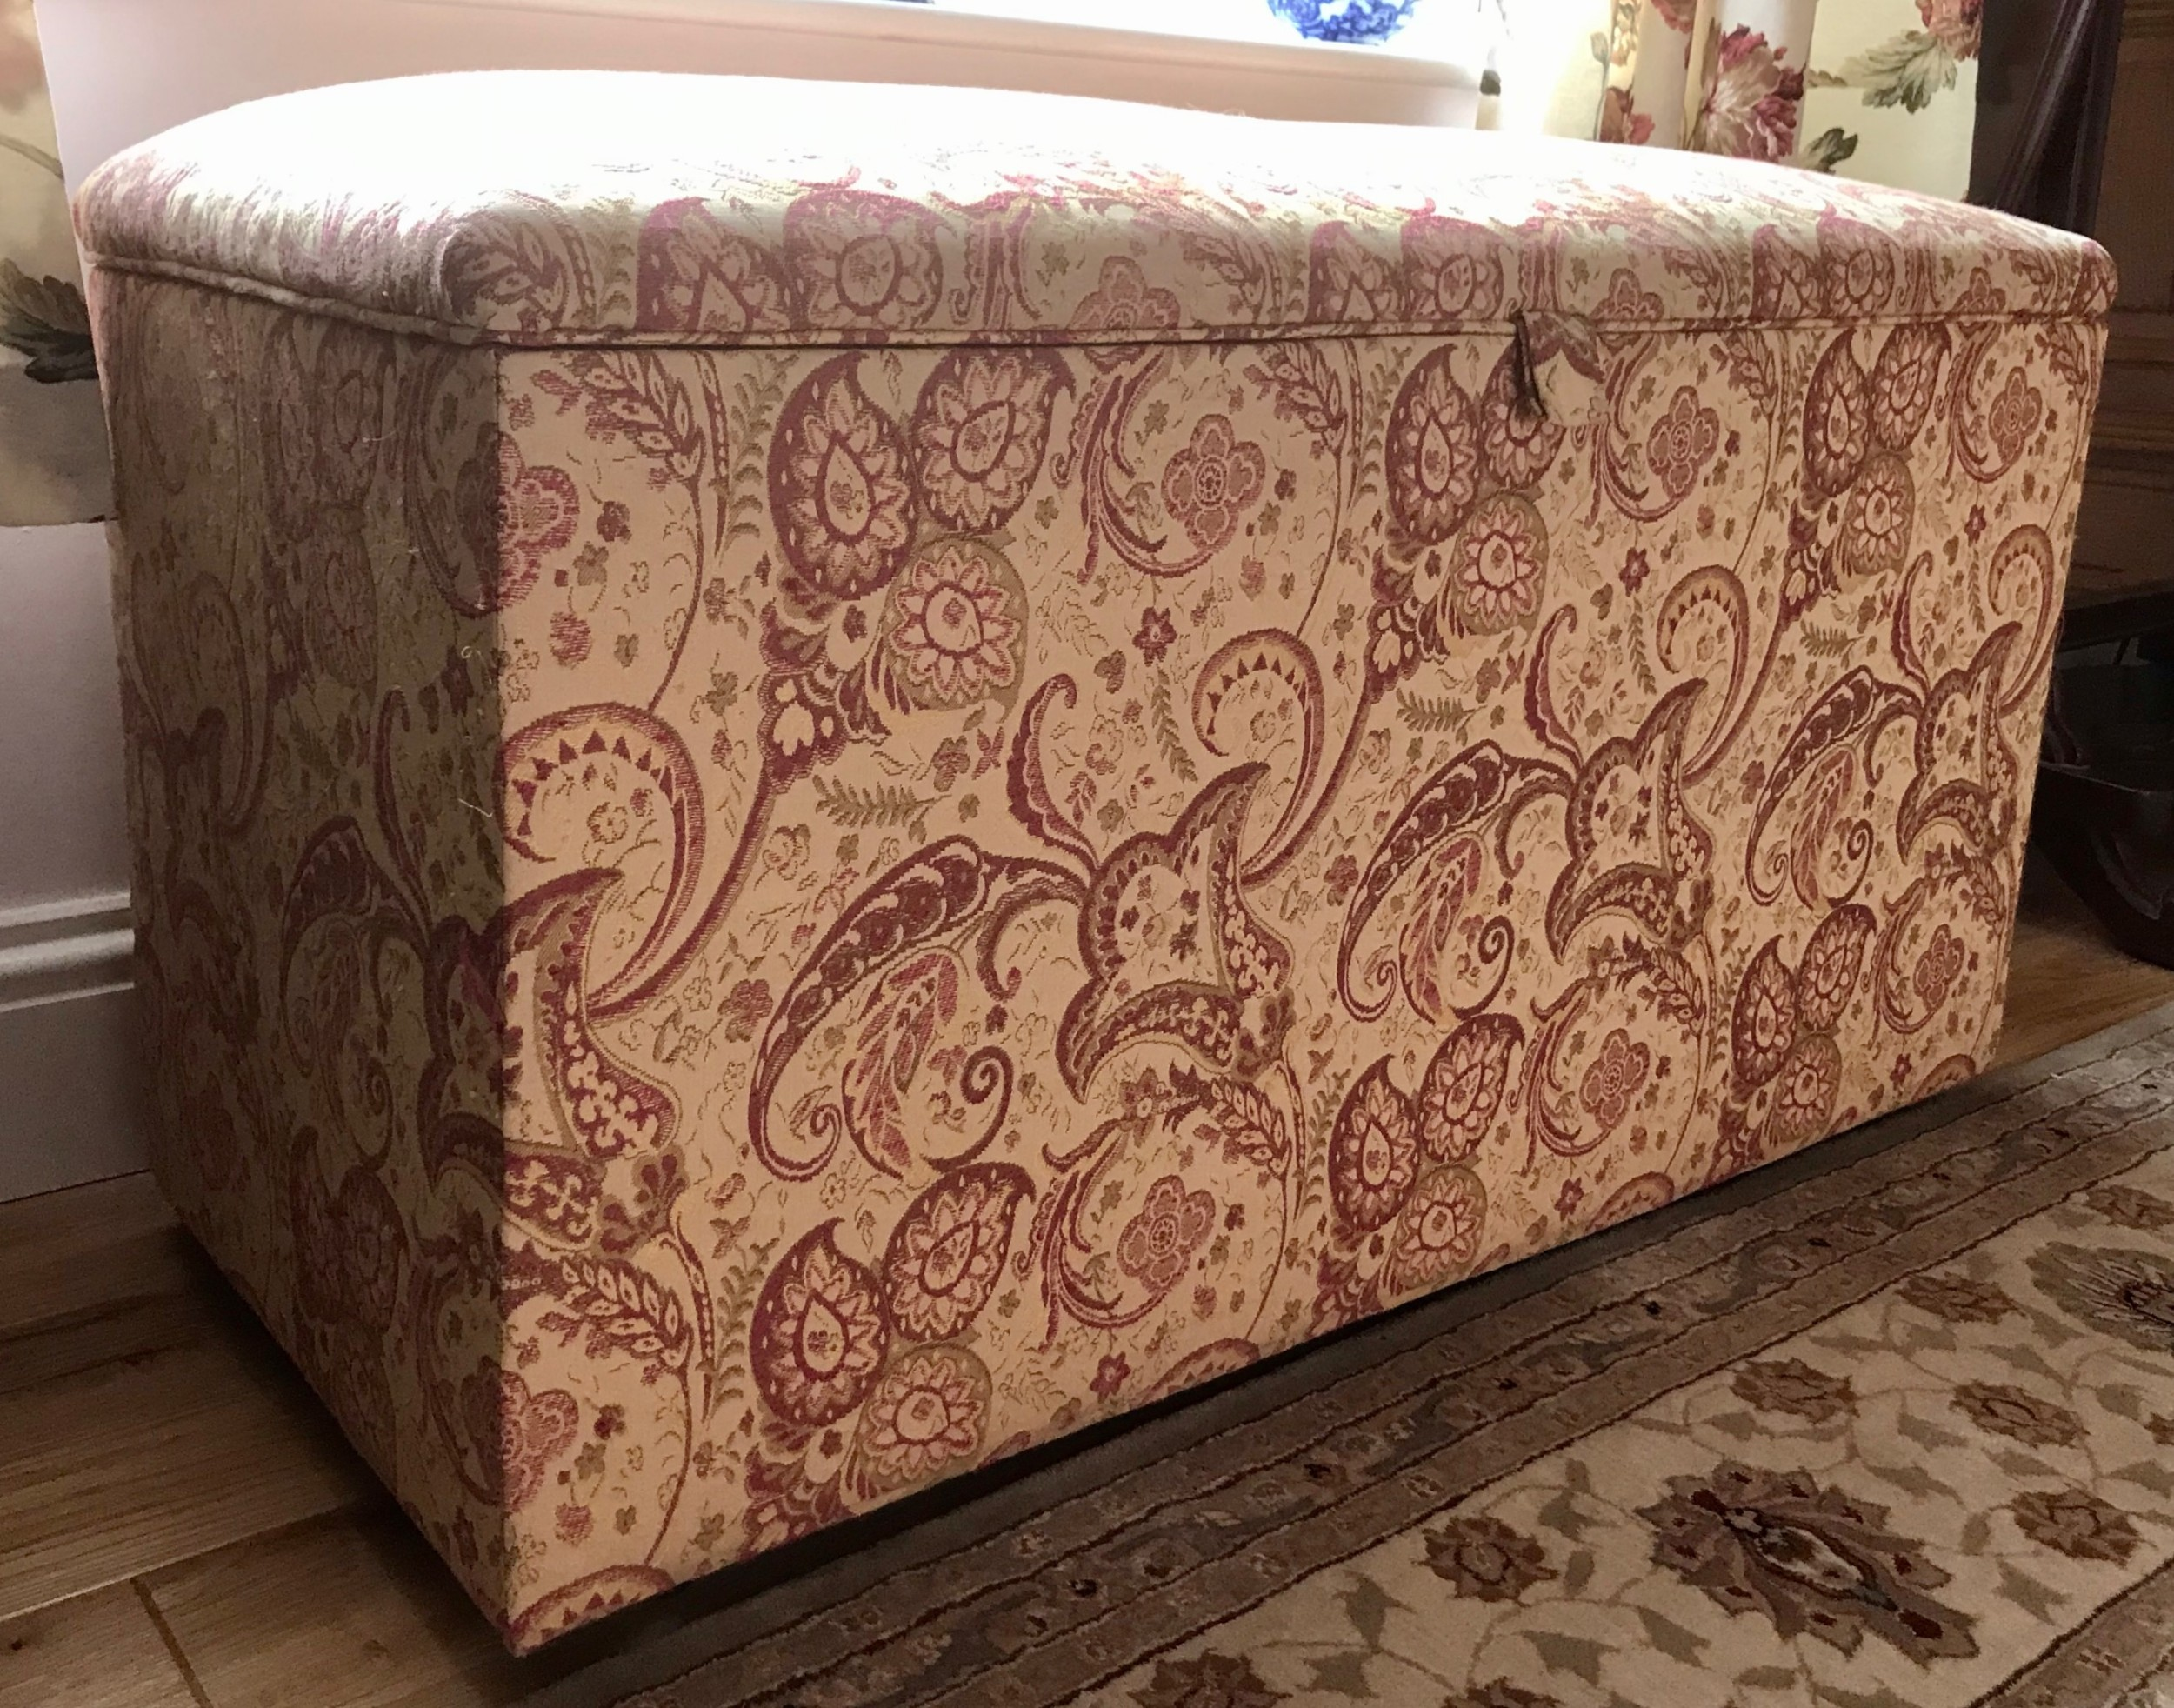 a large late 19th century upholstered ottoman